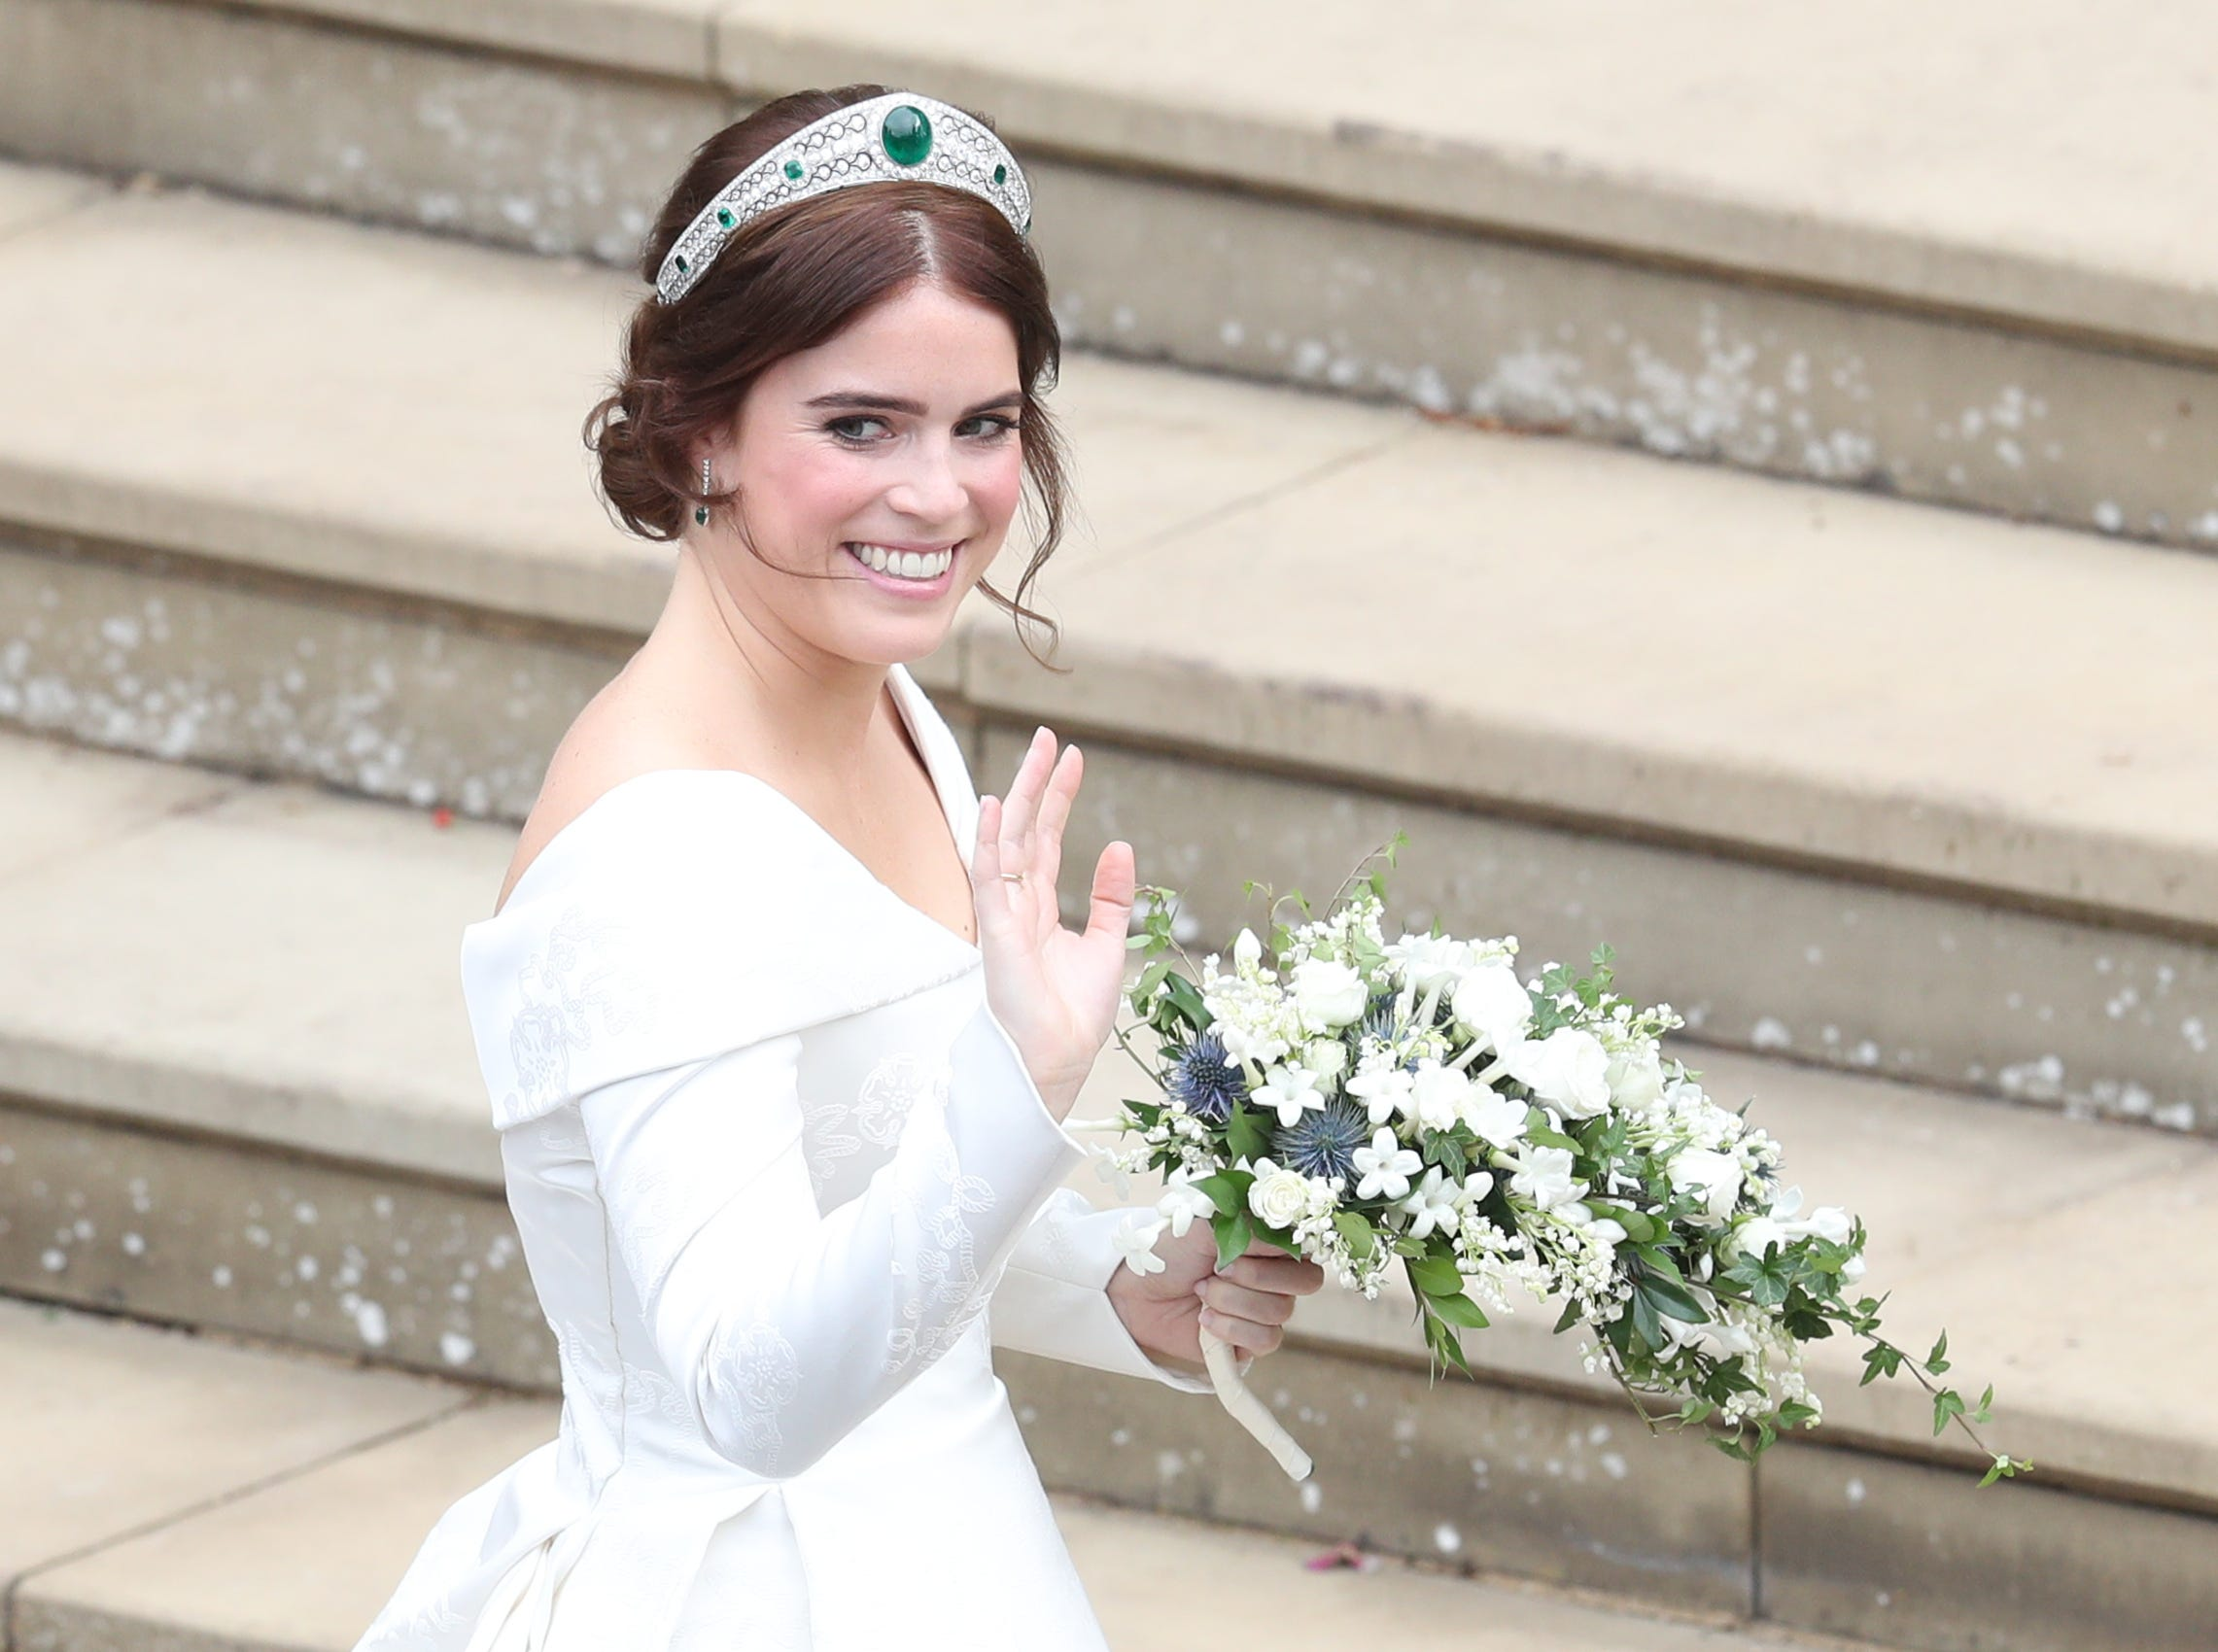 WINDSOR, ENGLAND - OCTOBER 12: Princess Eugenie of York arrives to be wed to Mr. Jack Brooksbank at St. George's Chapel on October 12, 2018 in Windsor, England. (Photo by Andrew Matthews - WPA Pool/Getty Images) ORG XMIT: 775239781 ORIG FILE ID: 1051952284